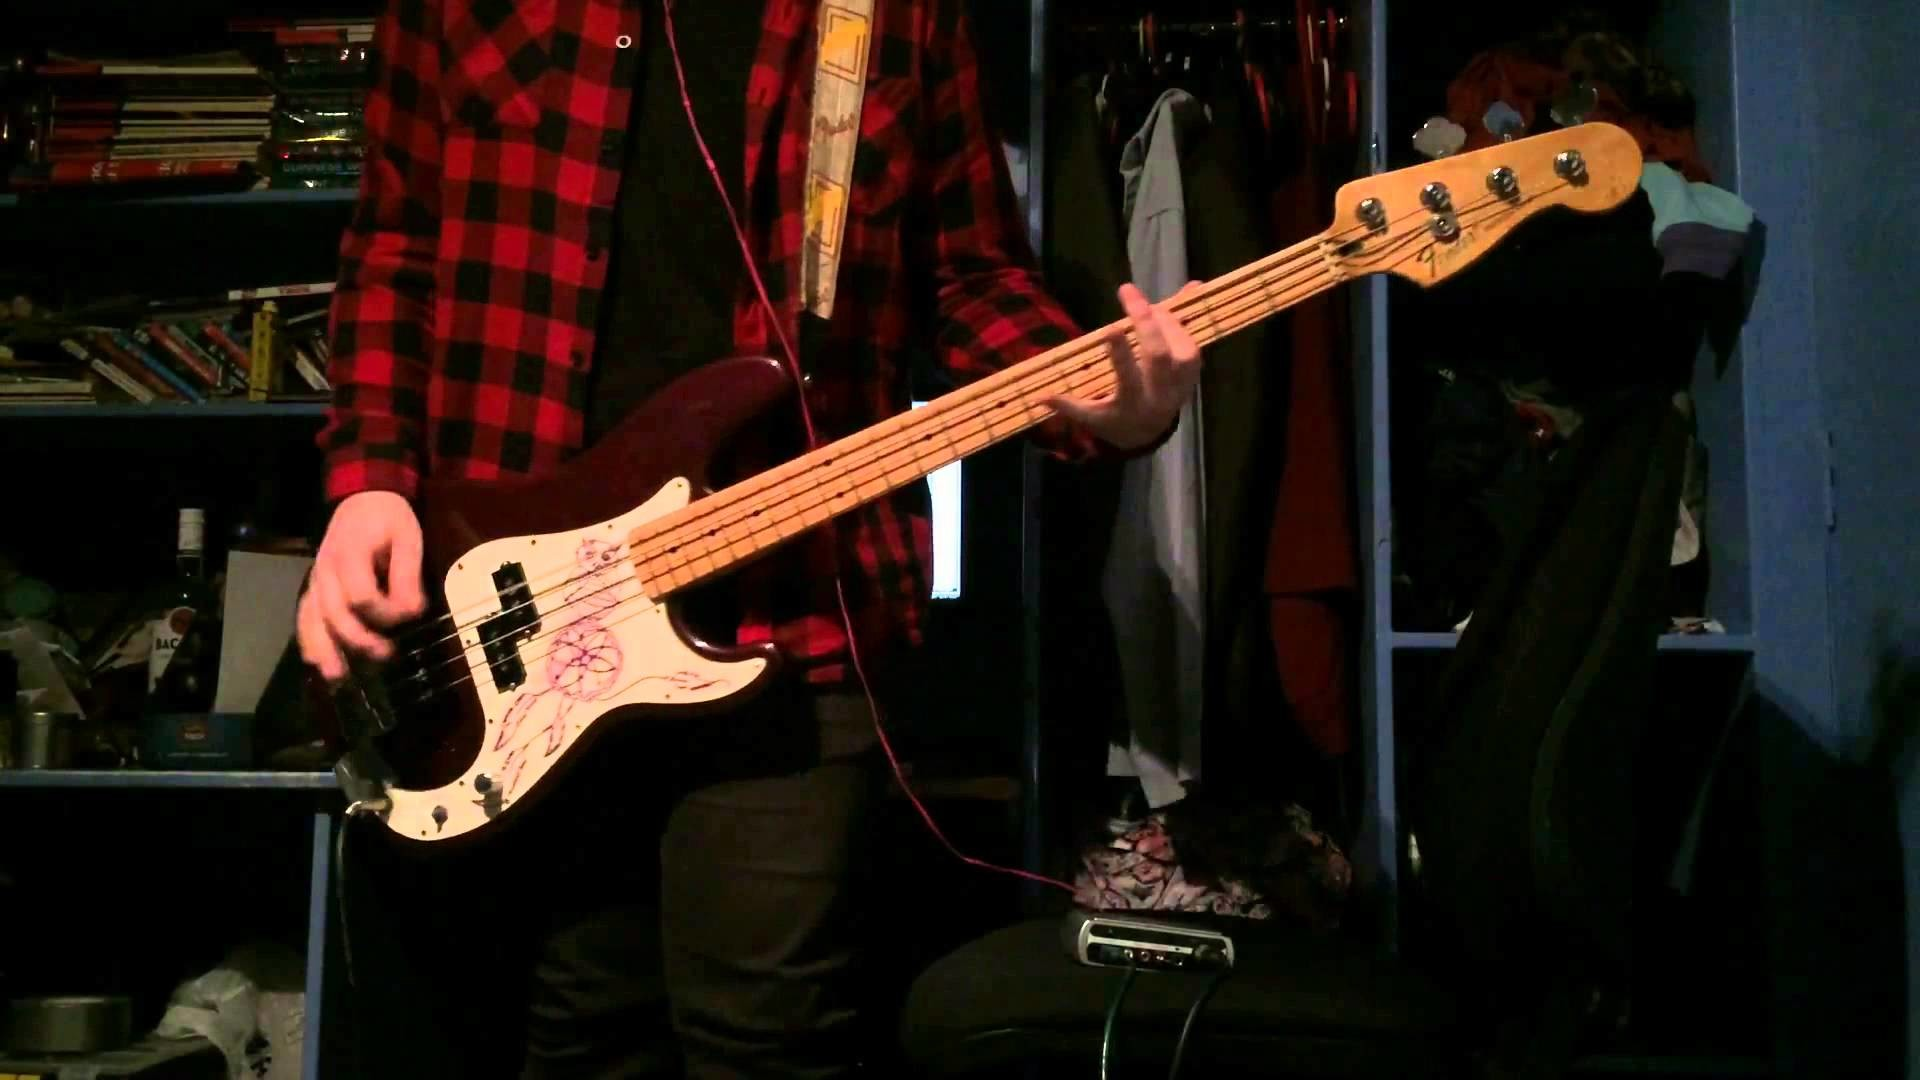 My Chemical Romance – Famous Last Words Bass Cover